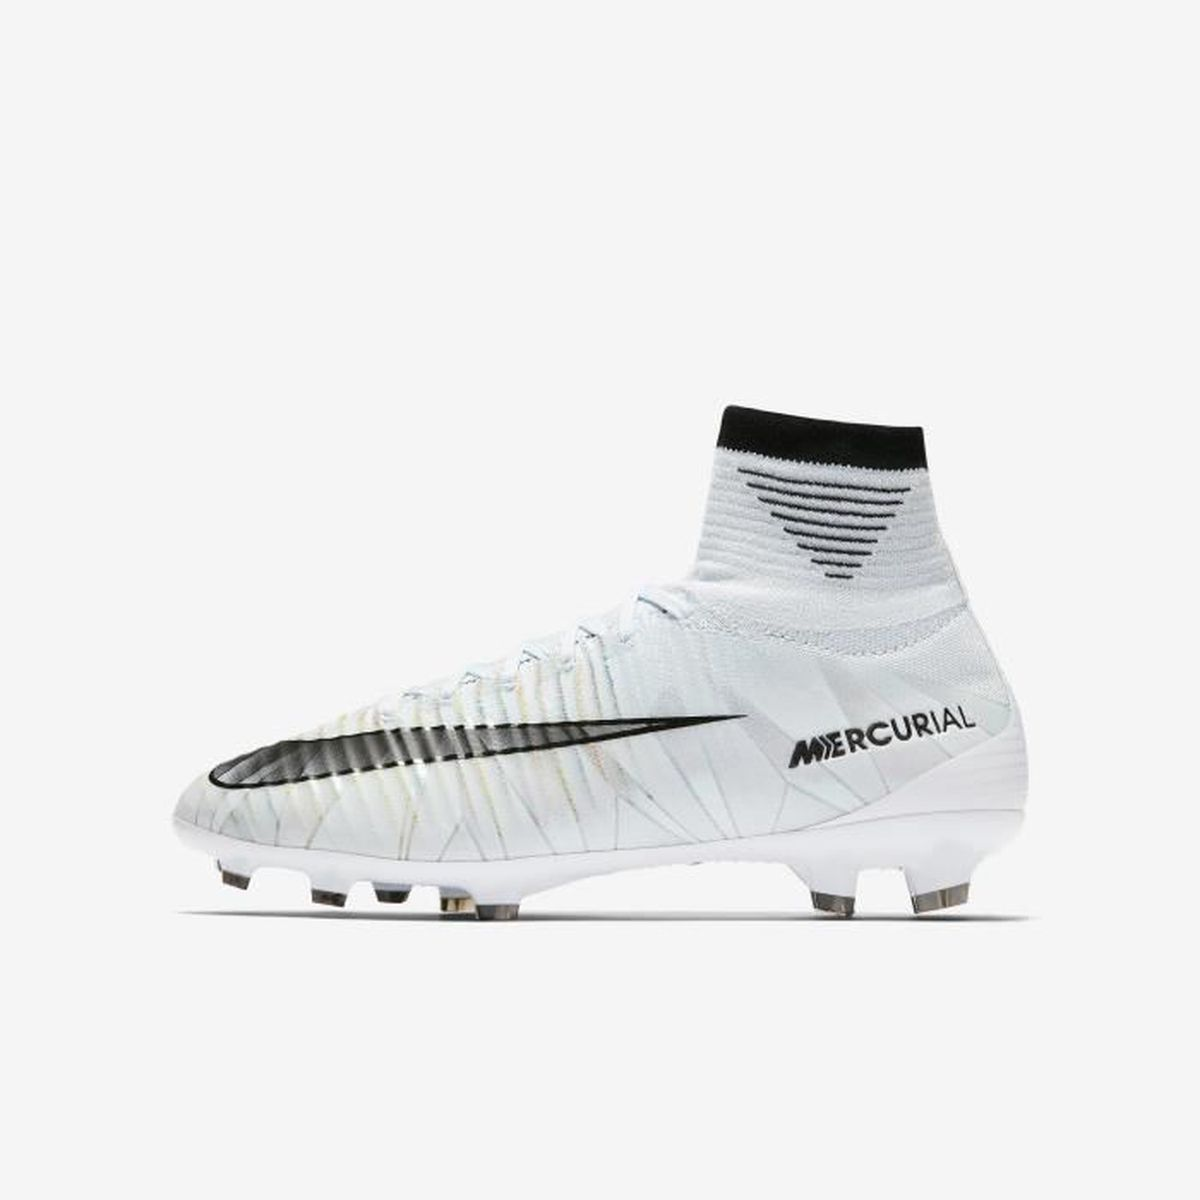 quality design 370f0 86be0 CHAUSSURES DE FOOTBALL Nike Jr. Mercurial Superfly V CR7 Dynamic Fit FG,